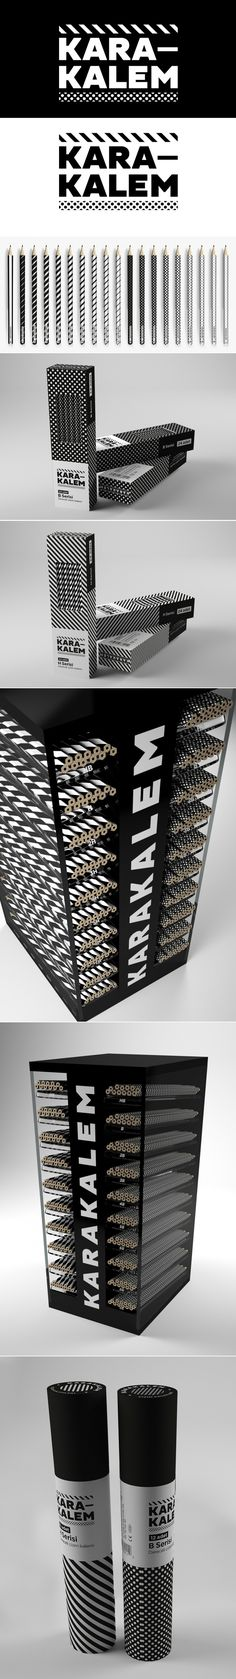 Student: Karakalem Drawing Pencils — The Dieline | Packaging & Branding Design & Innovation News